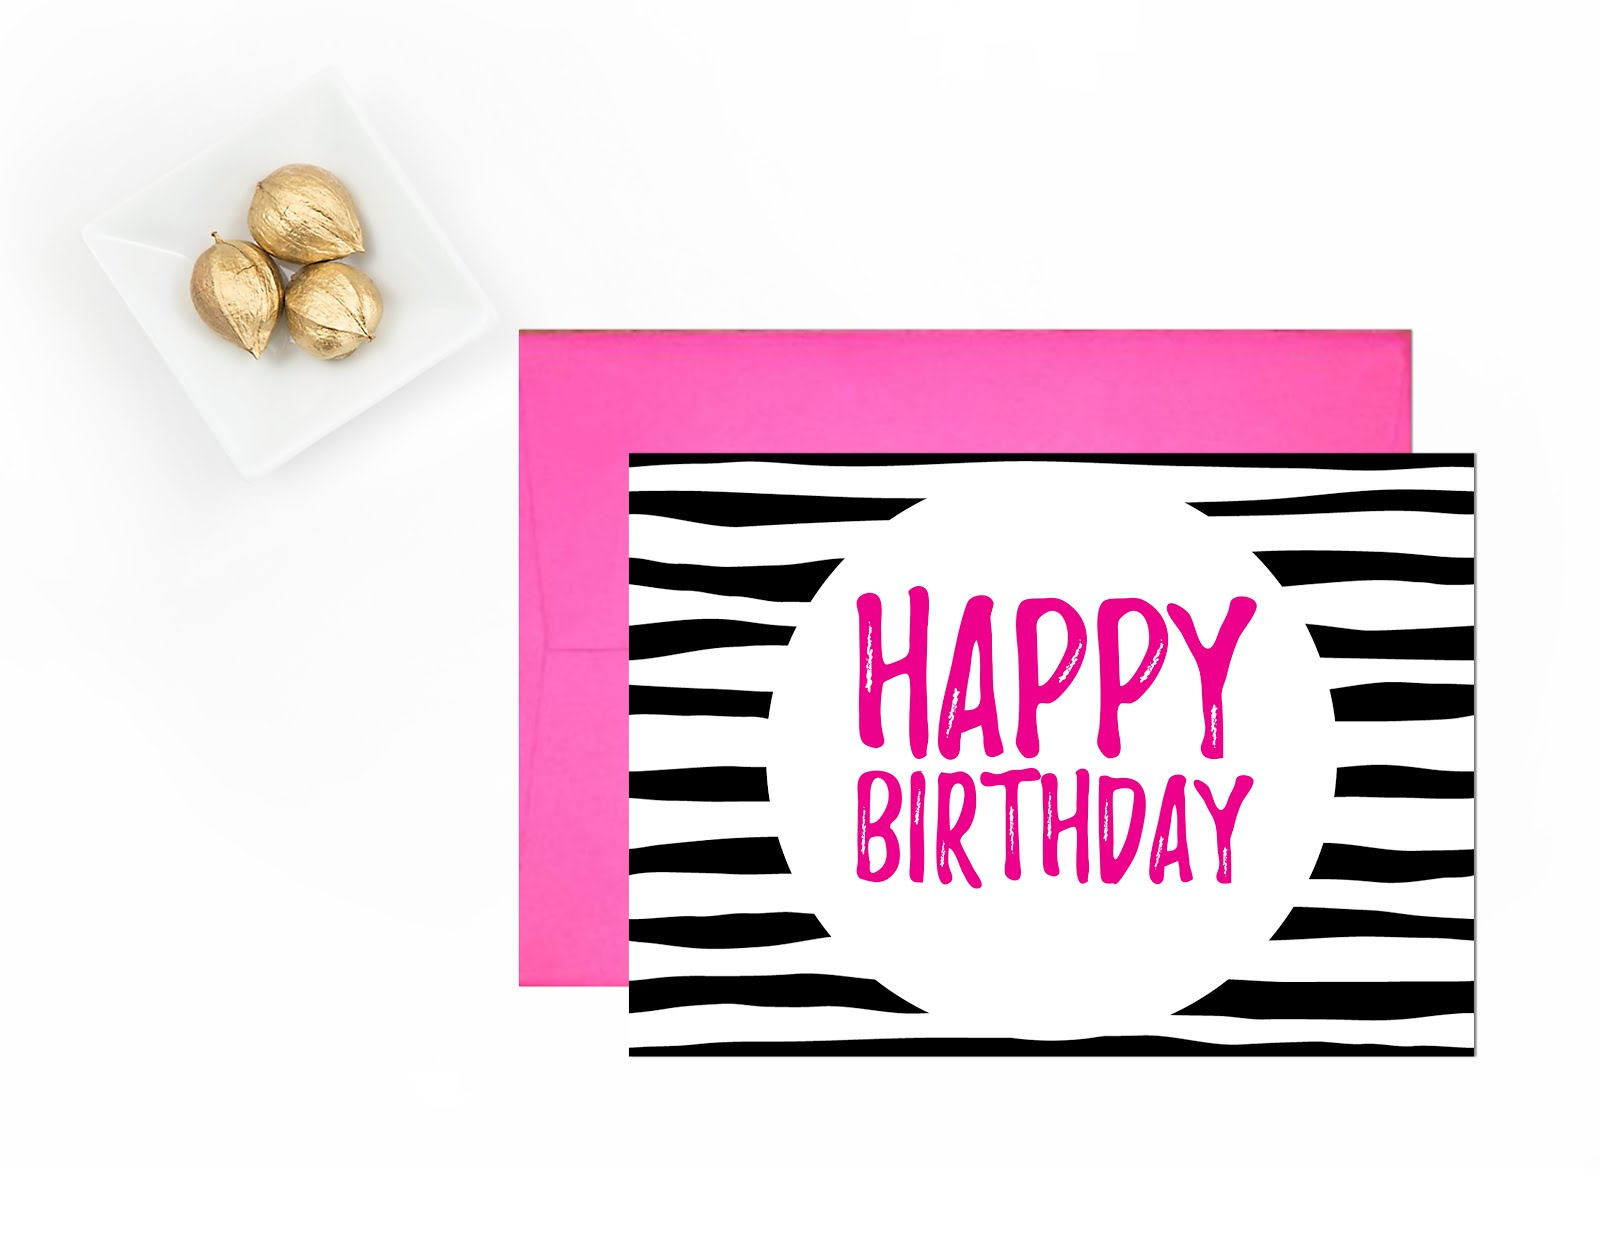 Happy Birthday | Free Printable Greeting Cards - Andree In Wonderland - Free Printable Happy Birthday Cards